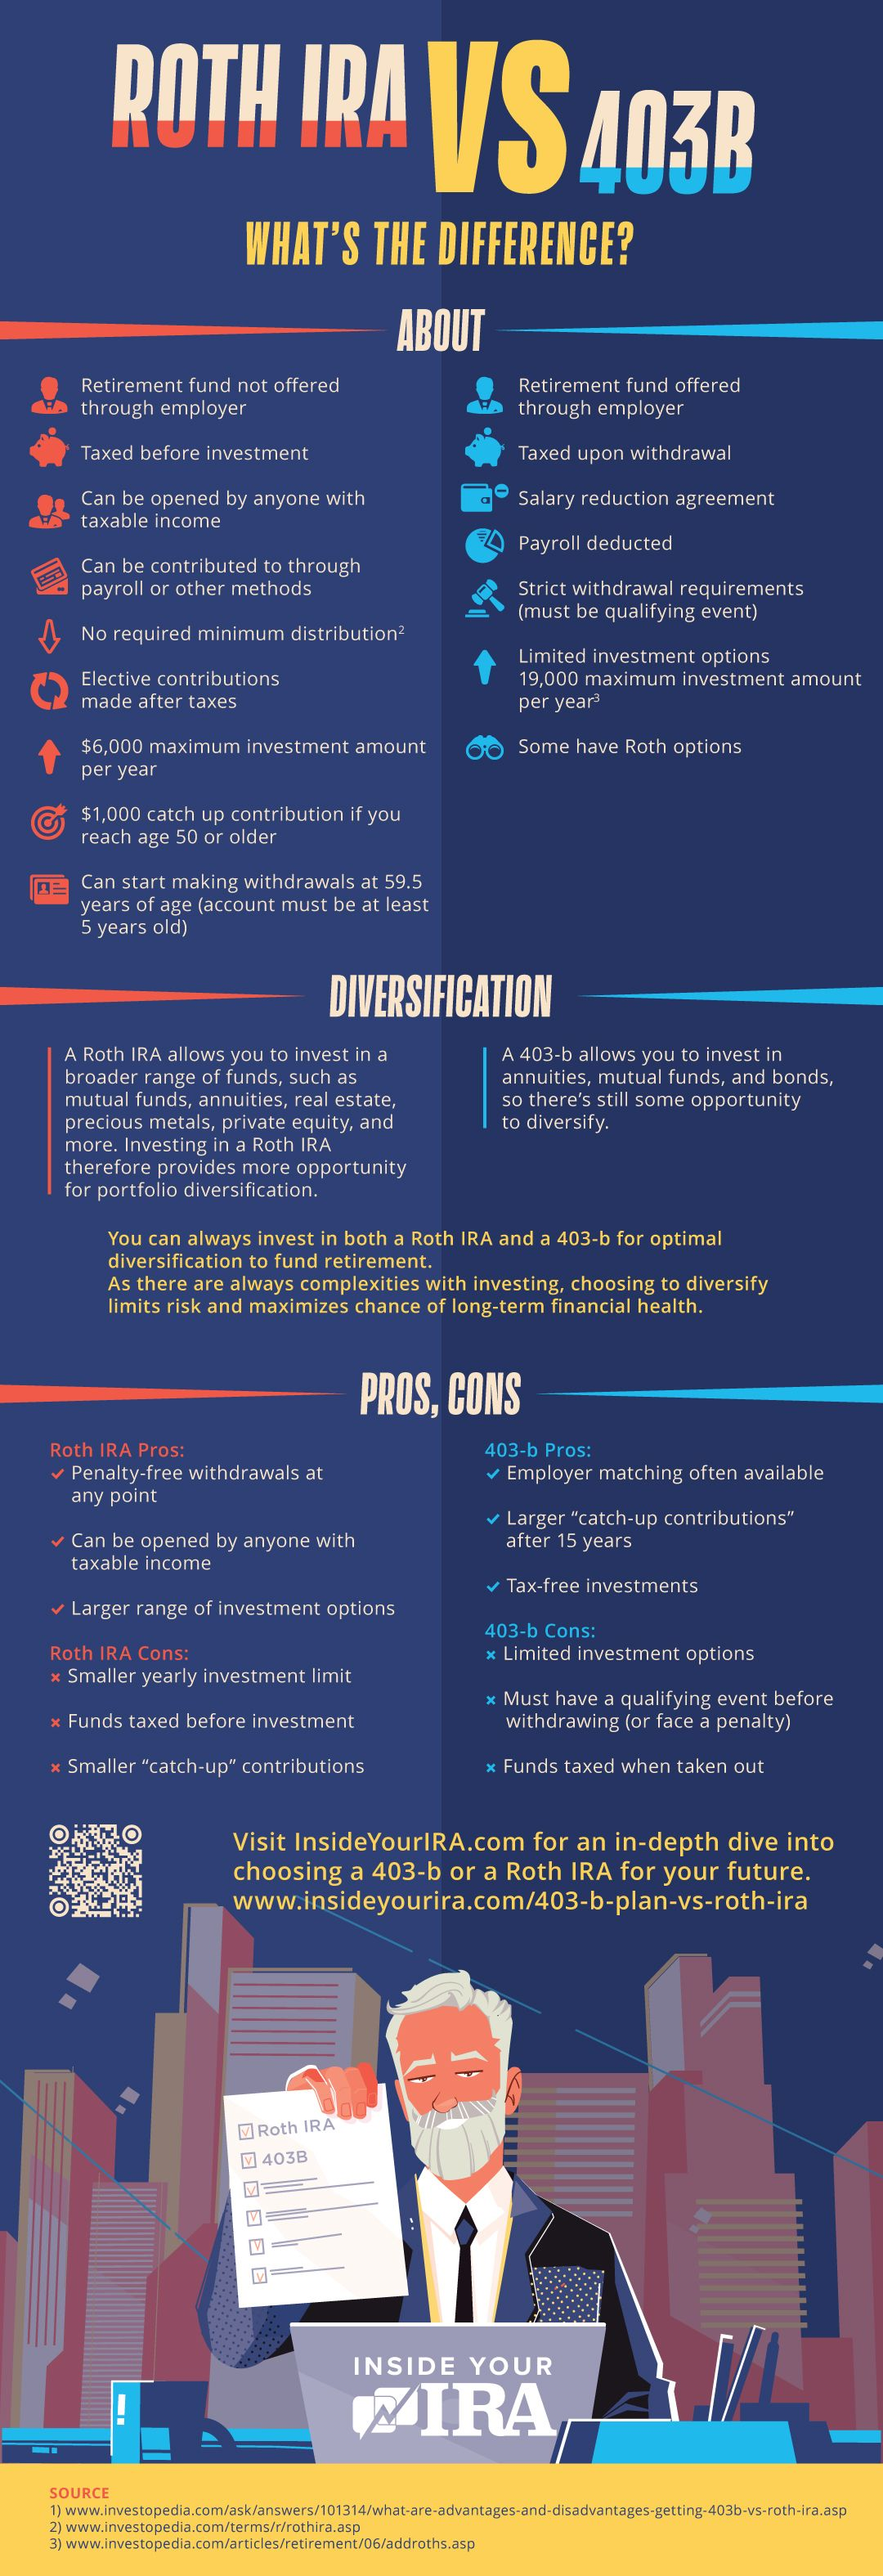 403(b) Plan vs Roth IRA: Which One Is Better? [INFOGRAPHIC]   Inside Your IRA